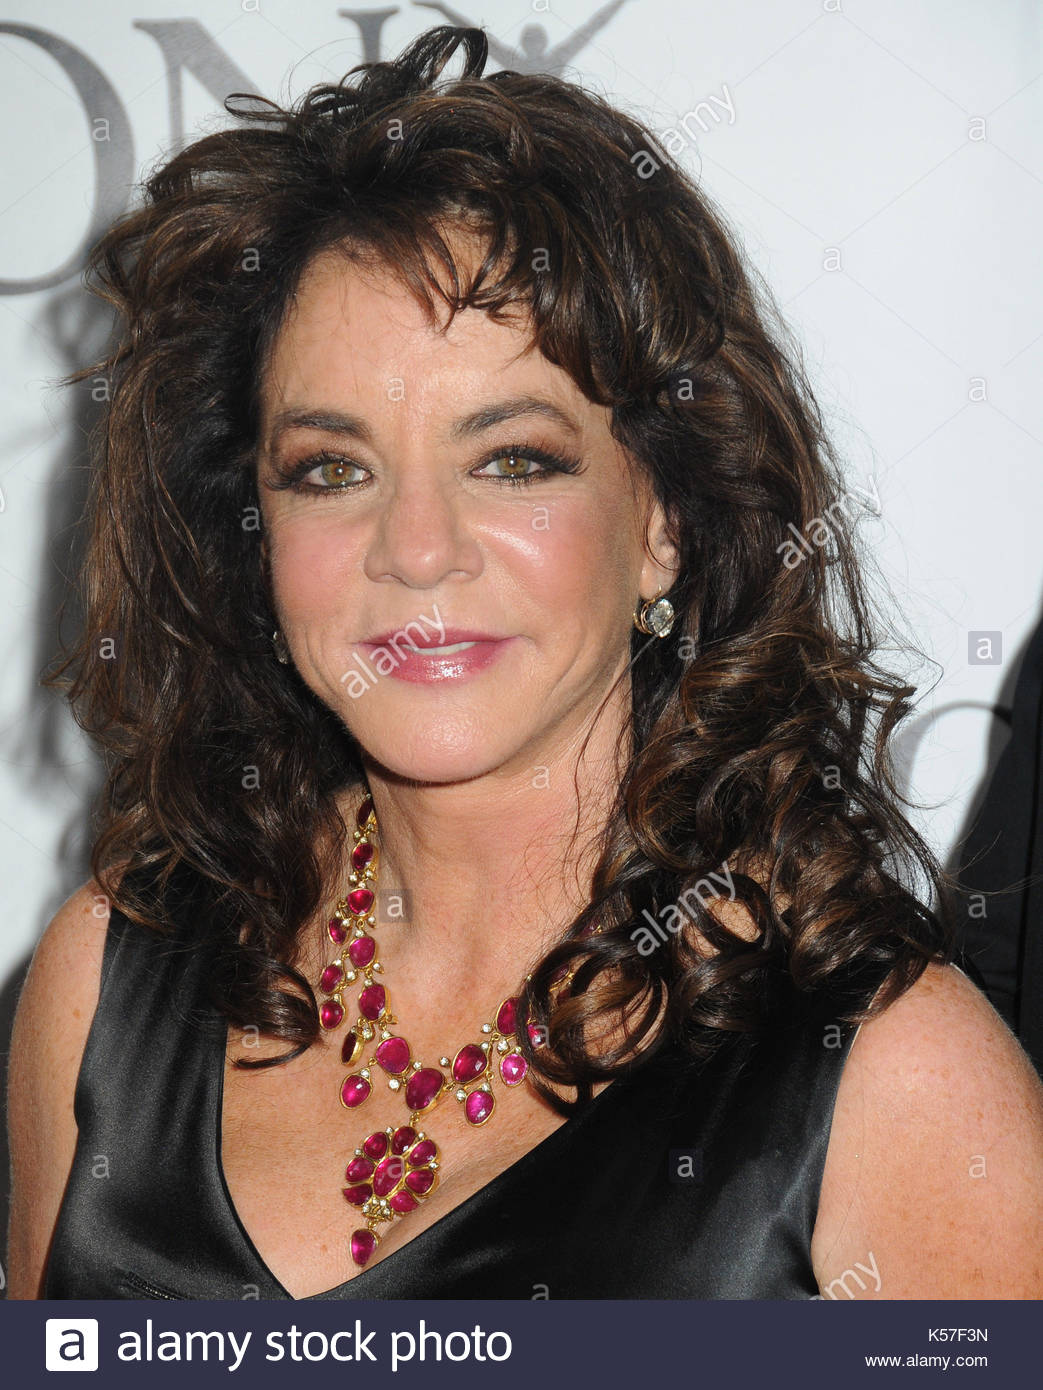 Stockard Channing. 63rd Annual Tony Awards - Red Carpet at Radio City Music Hall in NYC. - Stock Image